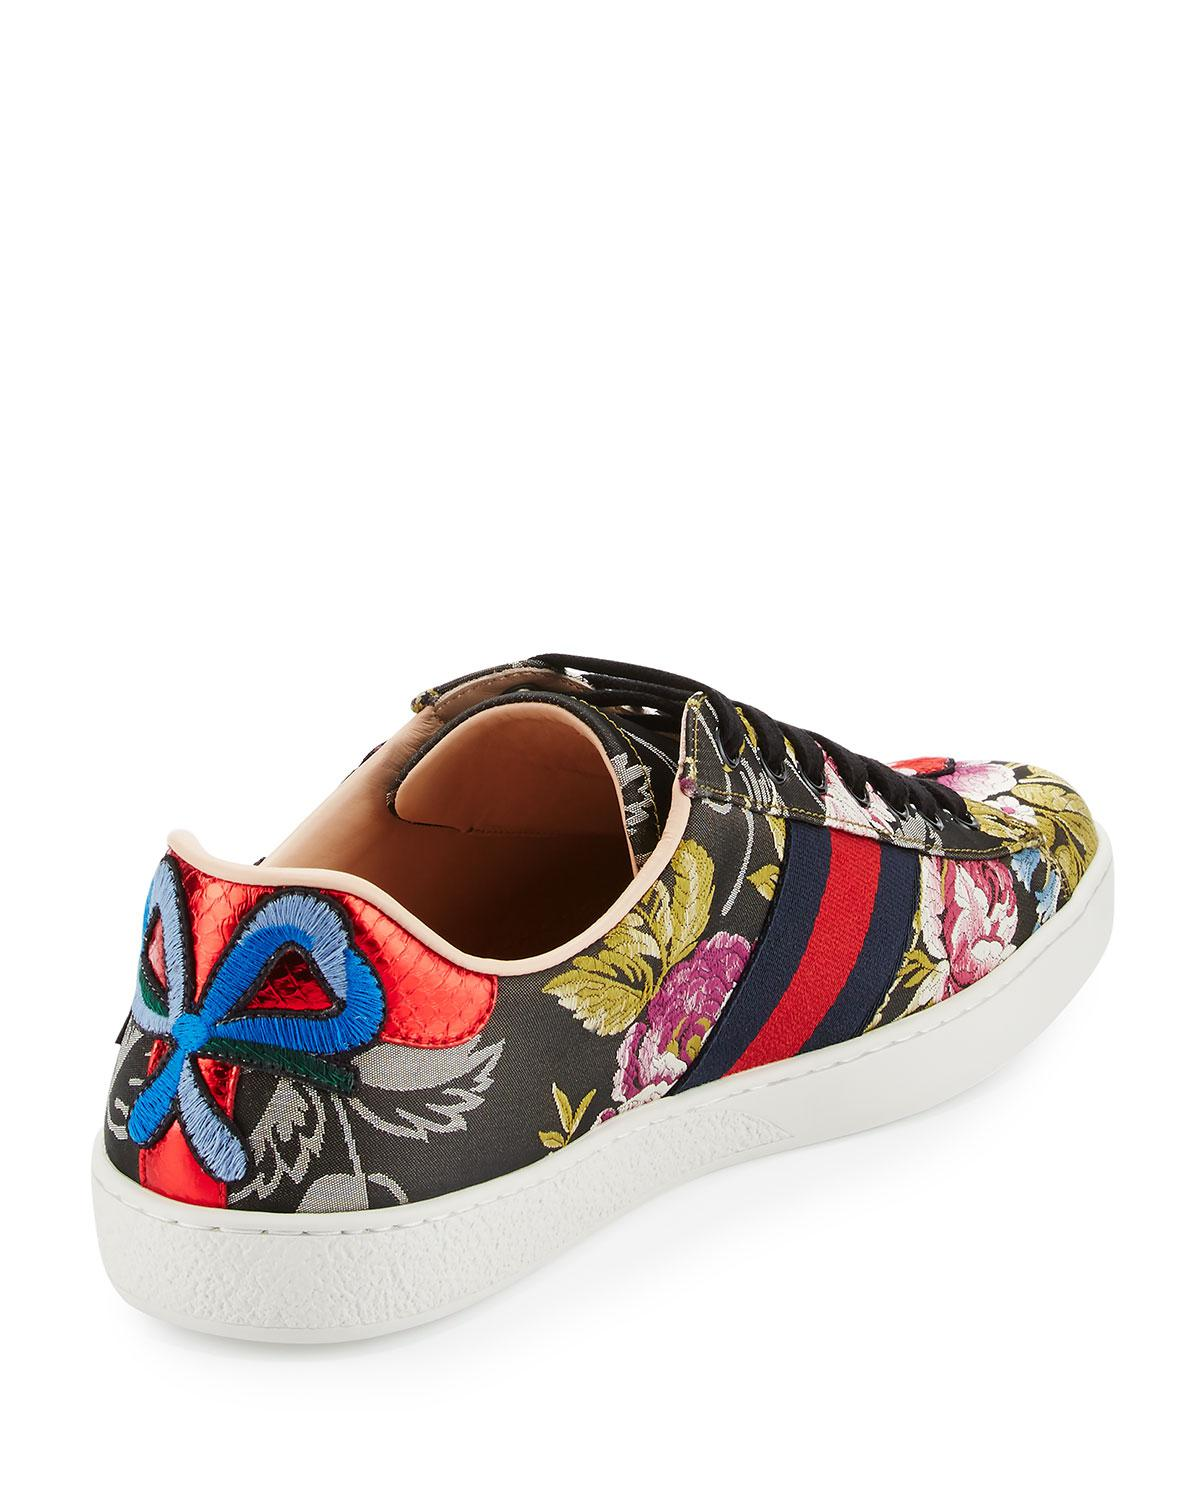 2d249a660 Gucci New Ace Men's Floral Leather Low-top Sneaker for Men - Lyst